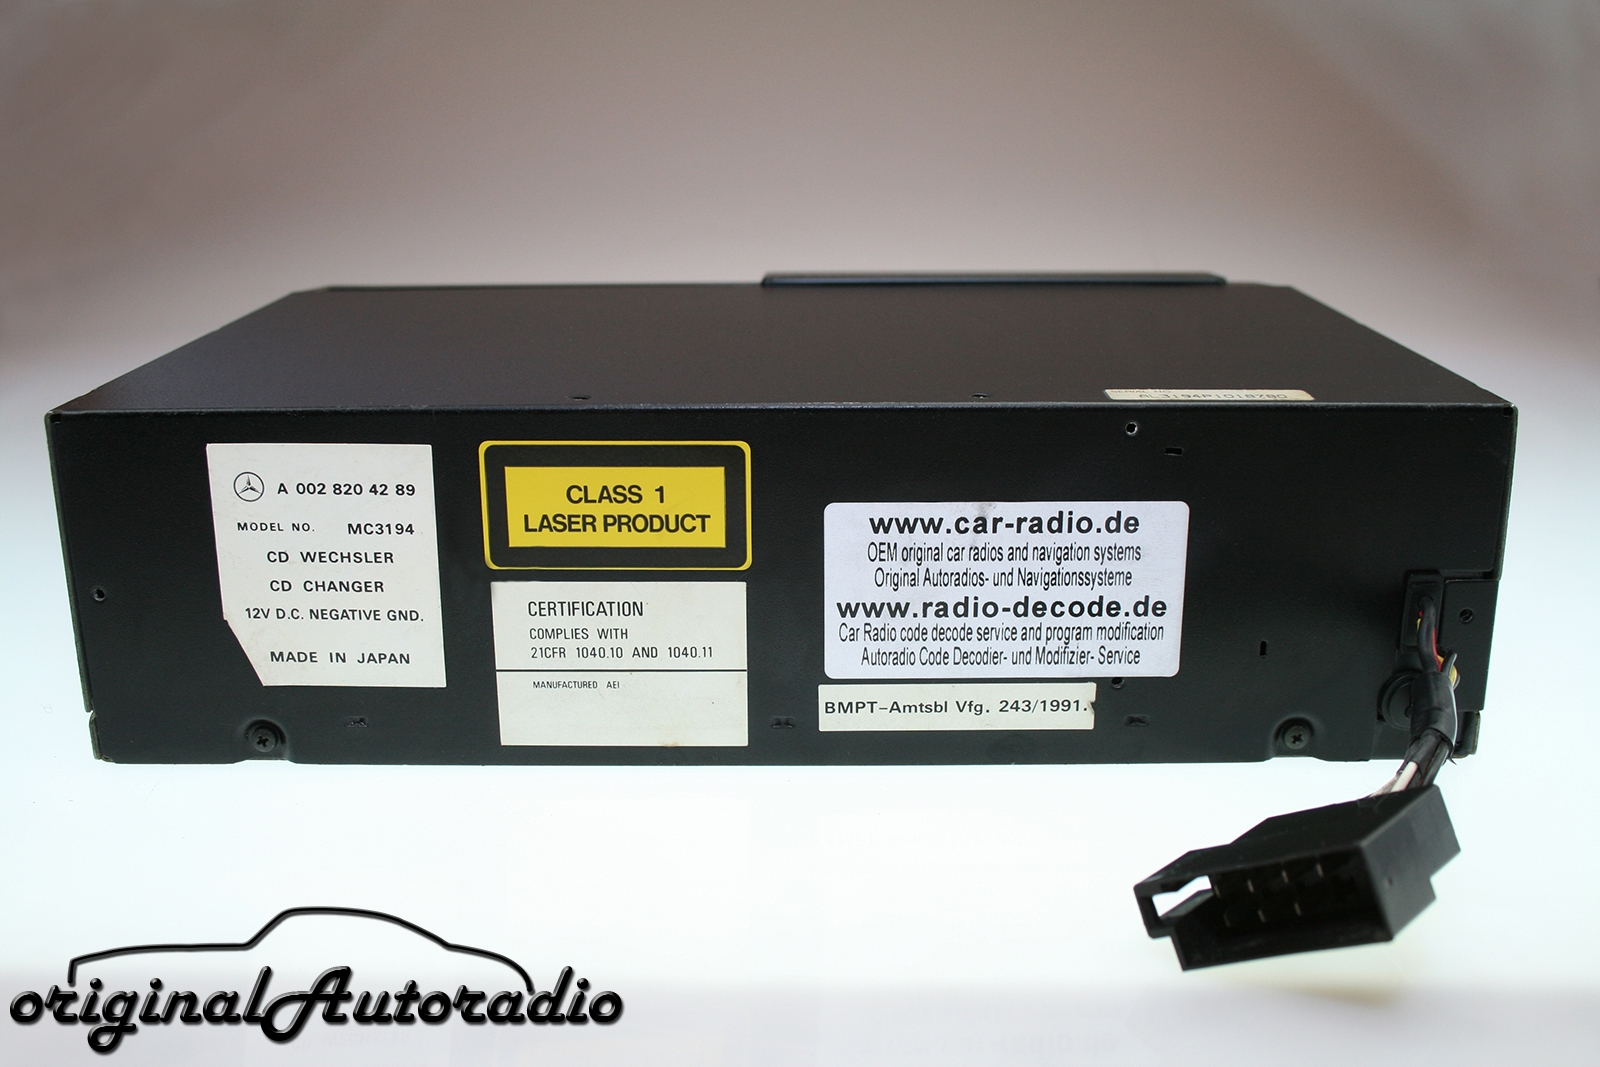 Original-Autoradio.de - Mercedes CD Wechsler MC3194 mit Analog ...